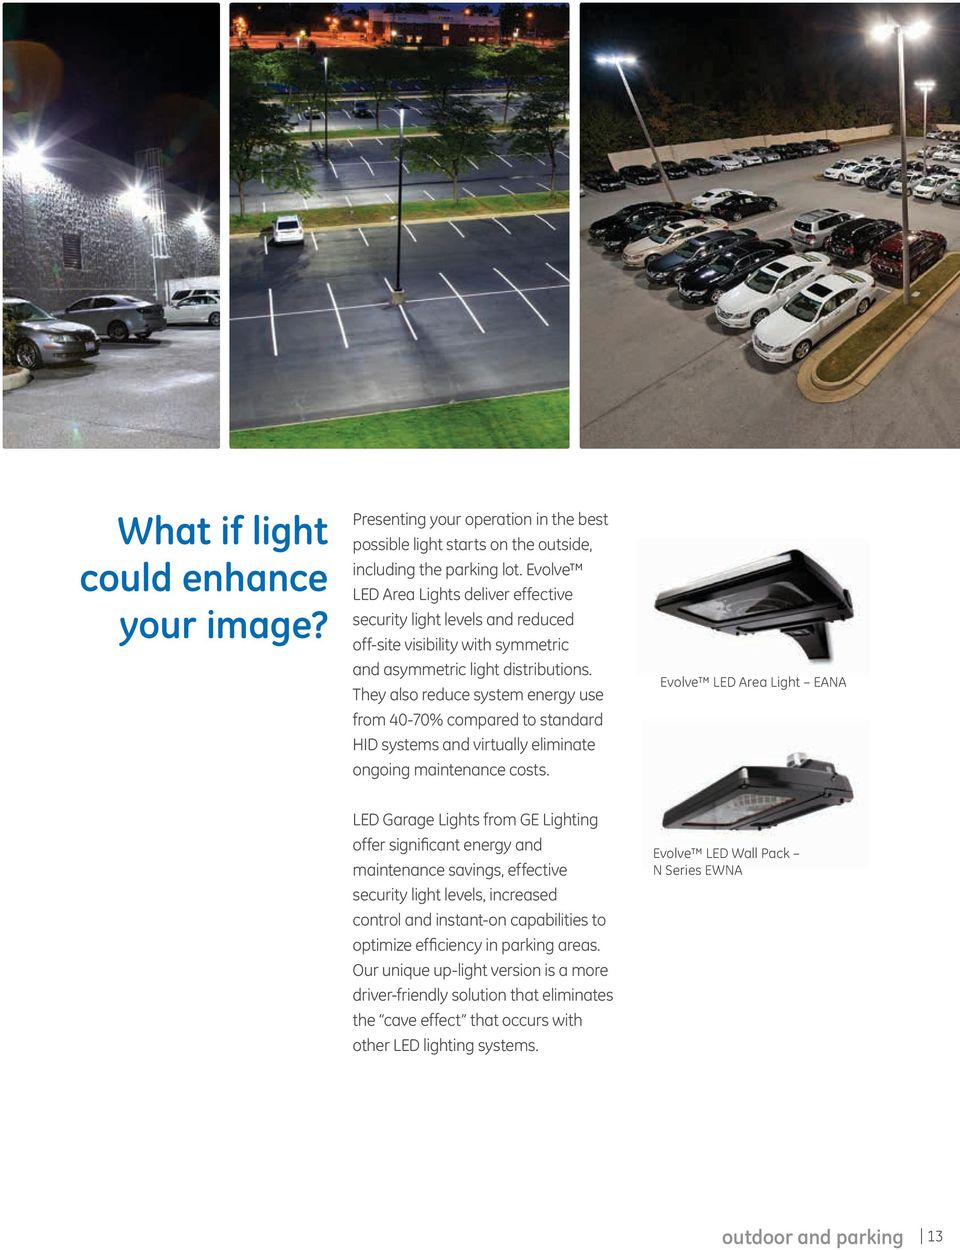 They also reduce system energy use from 40-70% compared to standard HID systems and virtually eliminate ongoing maintenance costs.